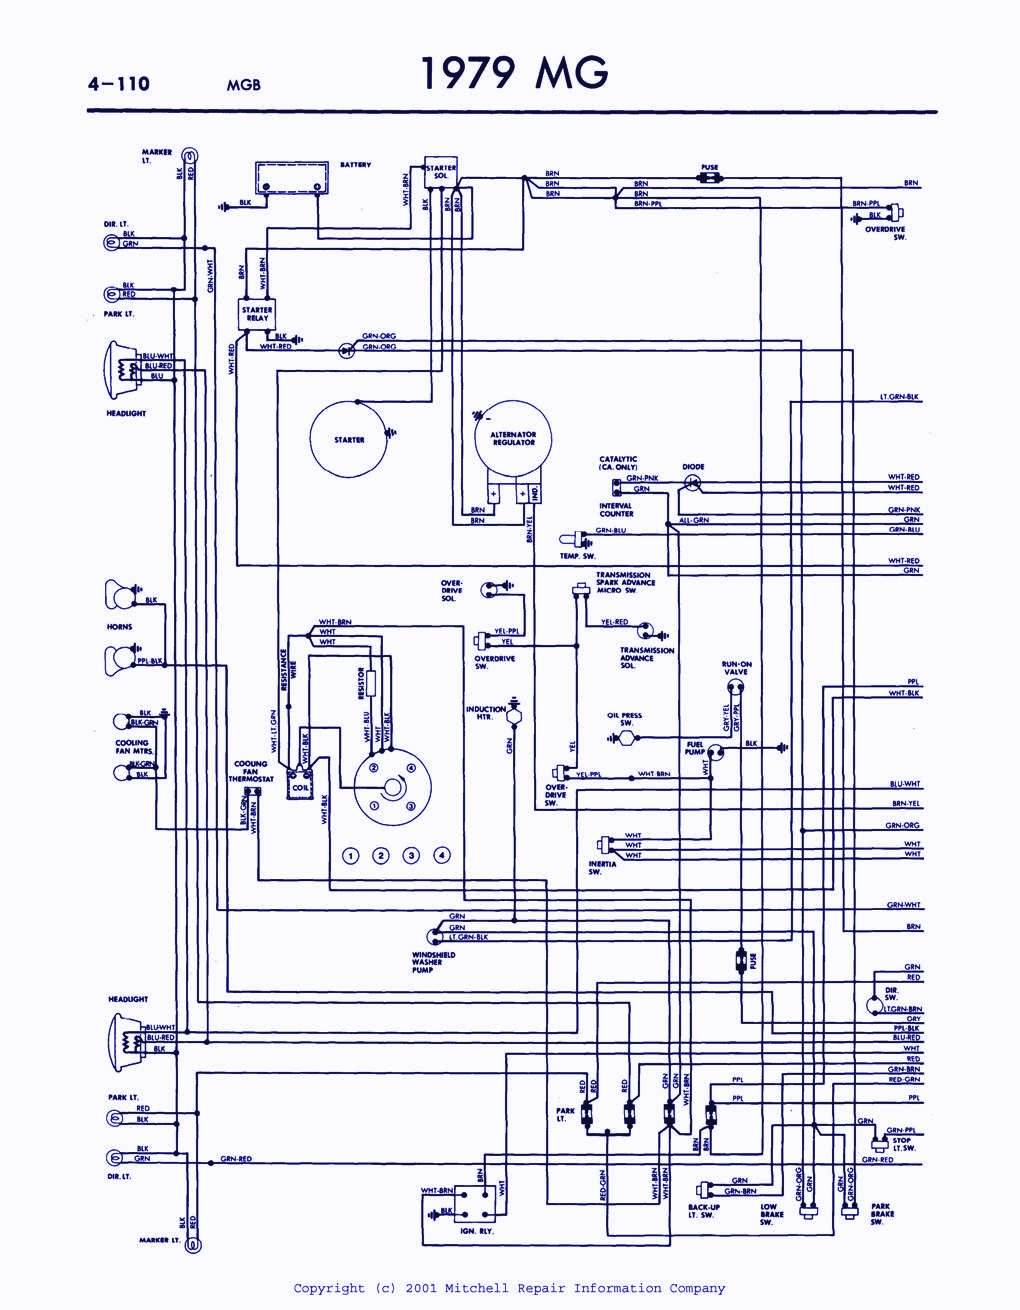 1969 Mgb Ignition Wiring Diagram 74 F100 Library1969